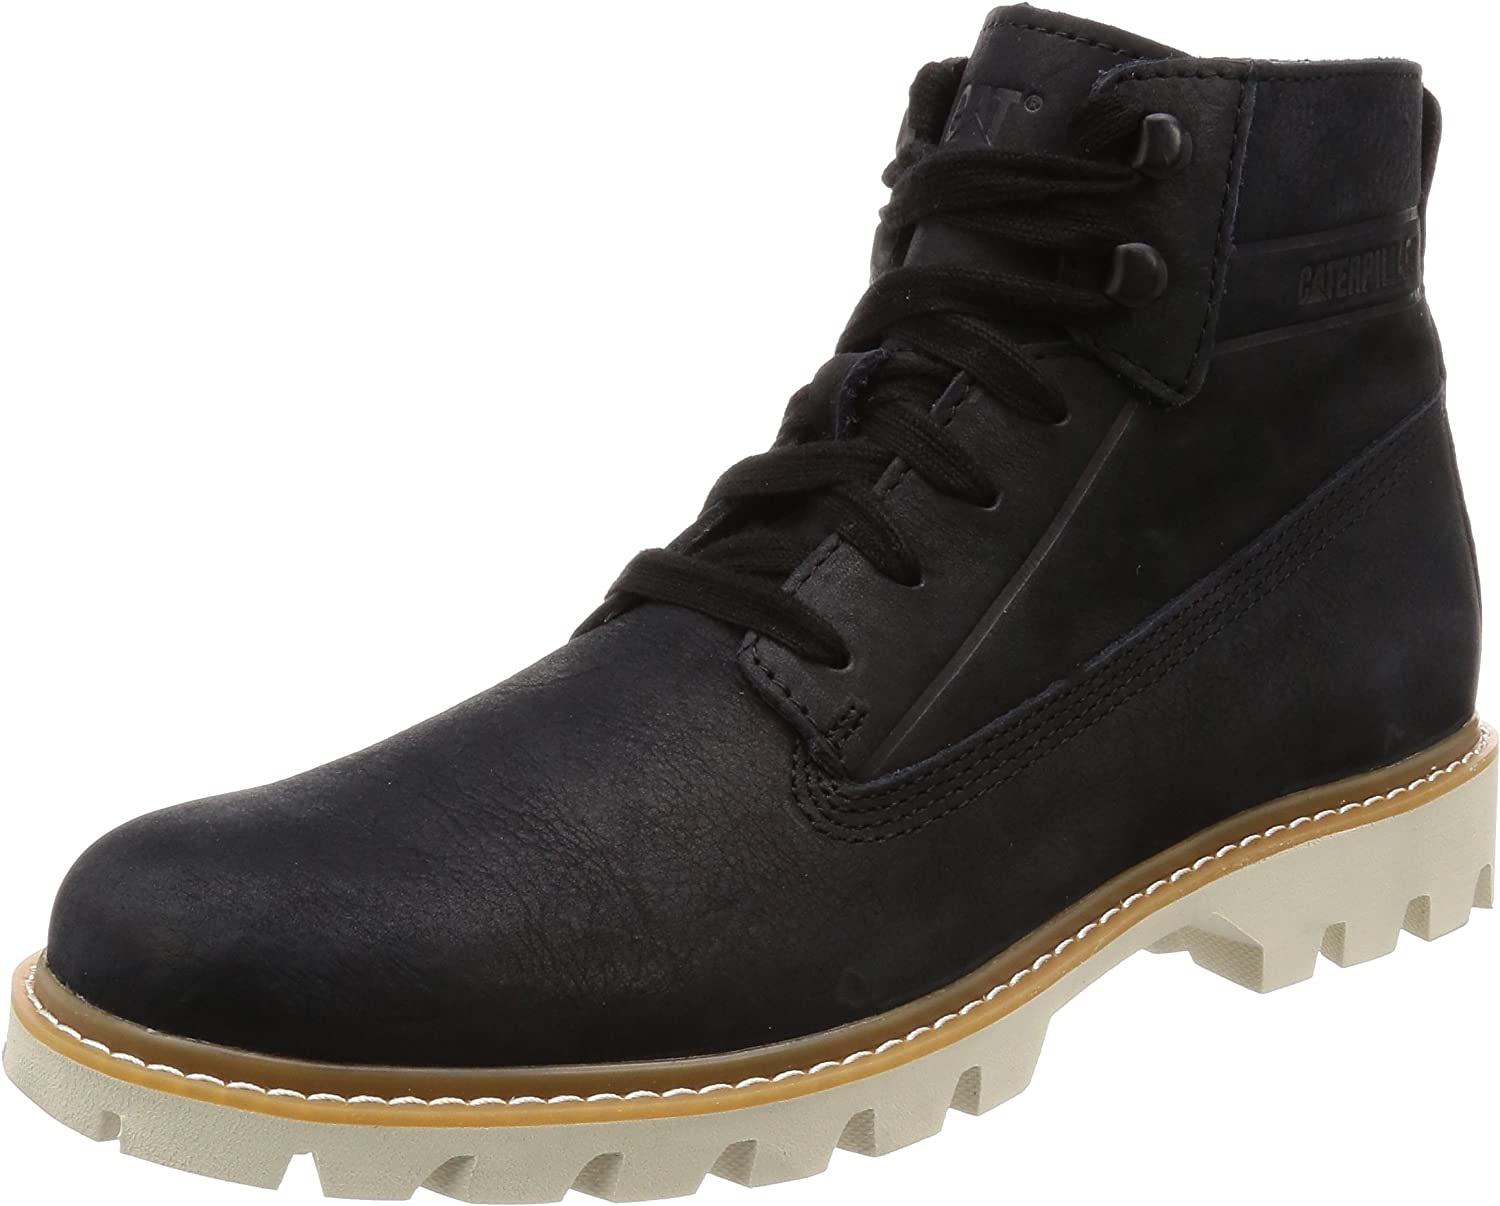 Caterpillar Men Black Leather 'Basis' Lace Up Boots